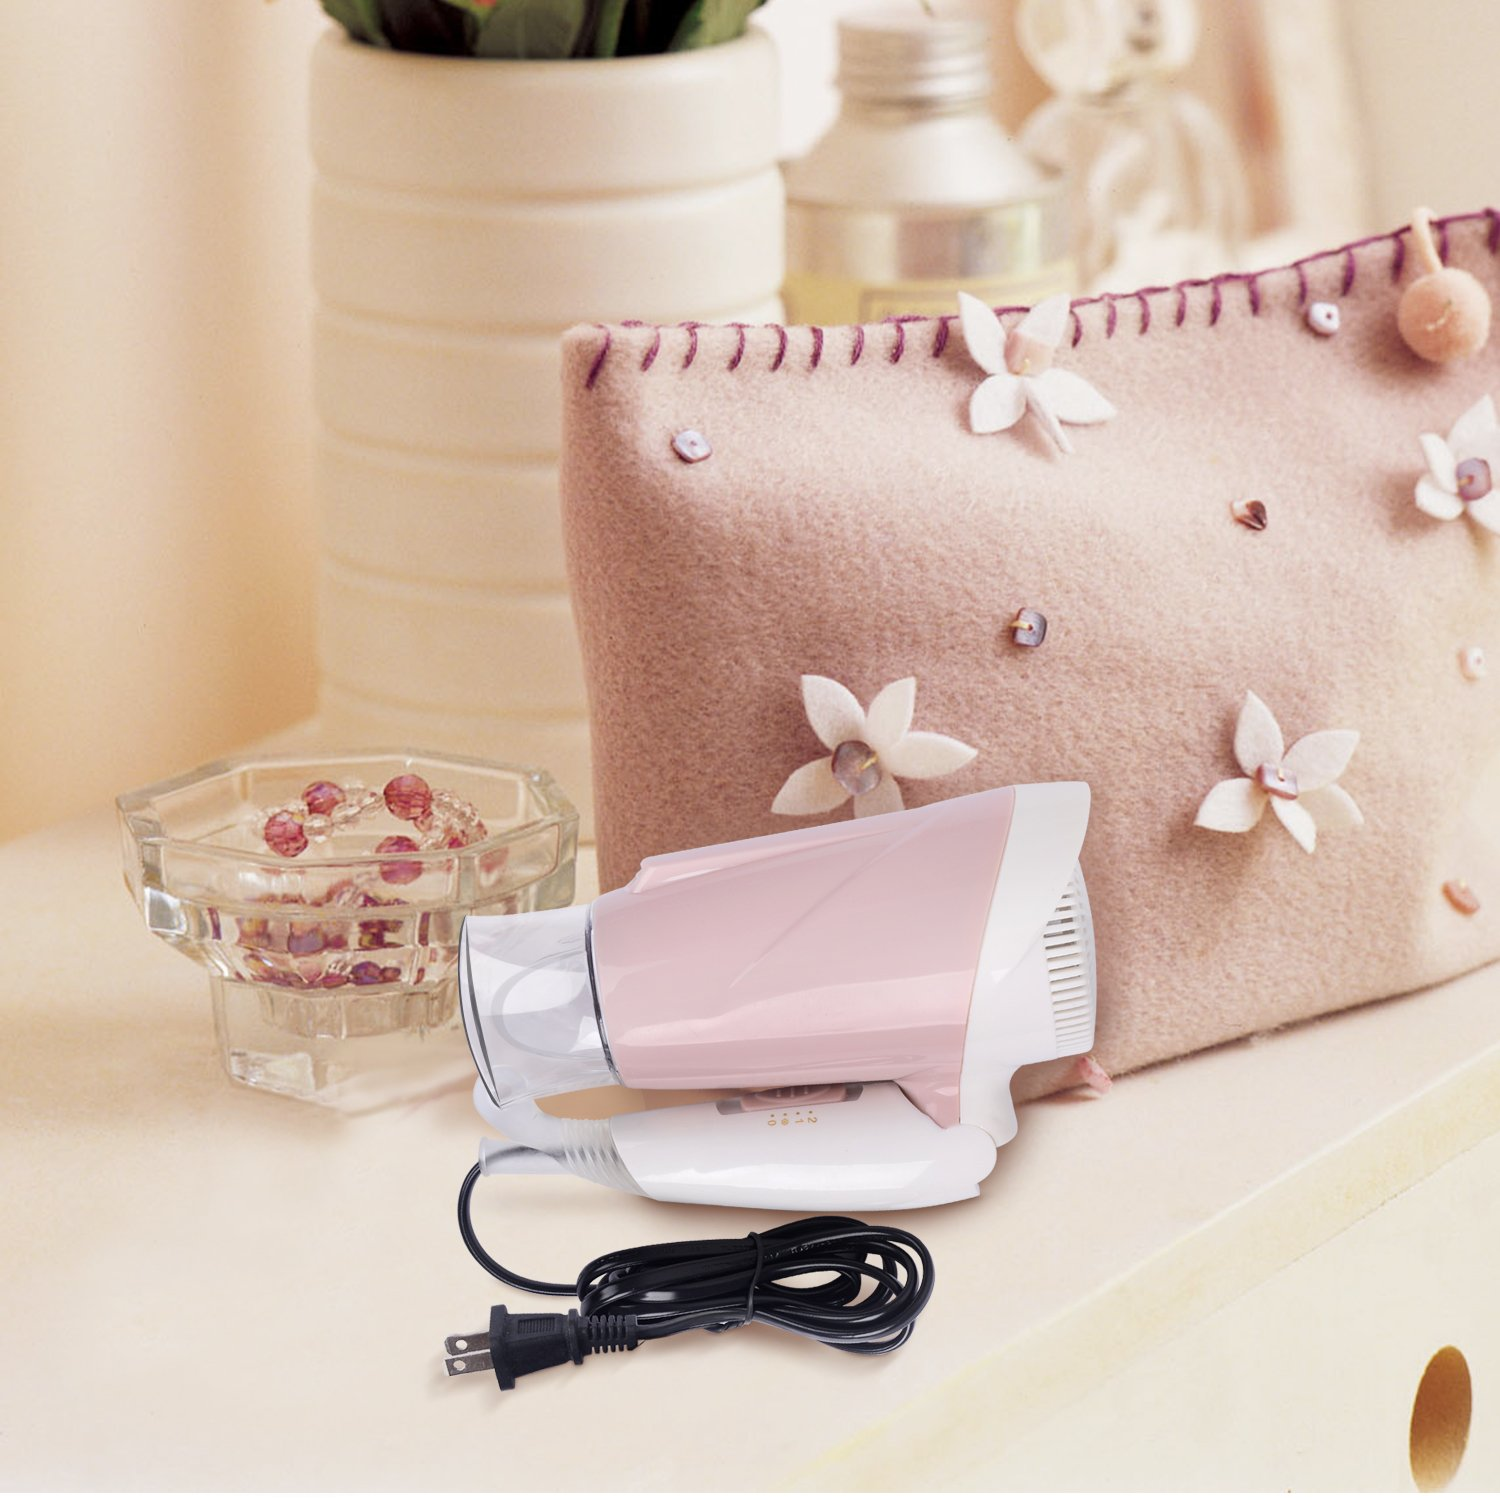 1600W Mini Travel Hair Dryer with Folding Handle for Faster Drying BESTBOMG Lightweight Salon Small Hair Blow Dryer with Detachable Styling Concentrator 2 Heat Setting Cool Shot Button Hot Air Brushes